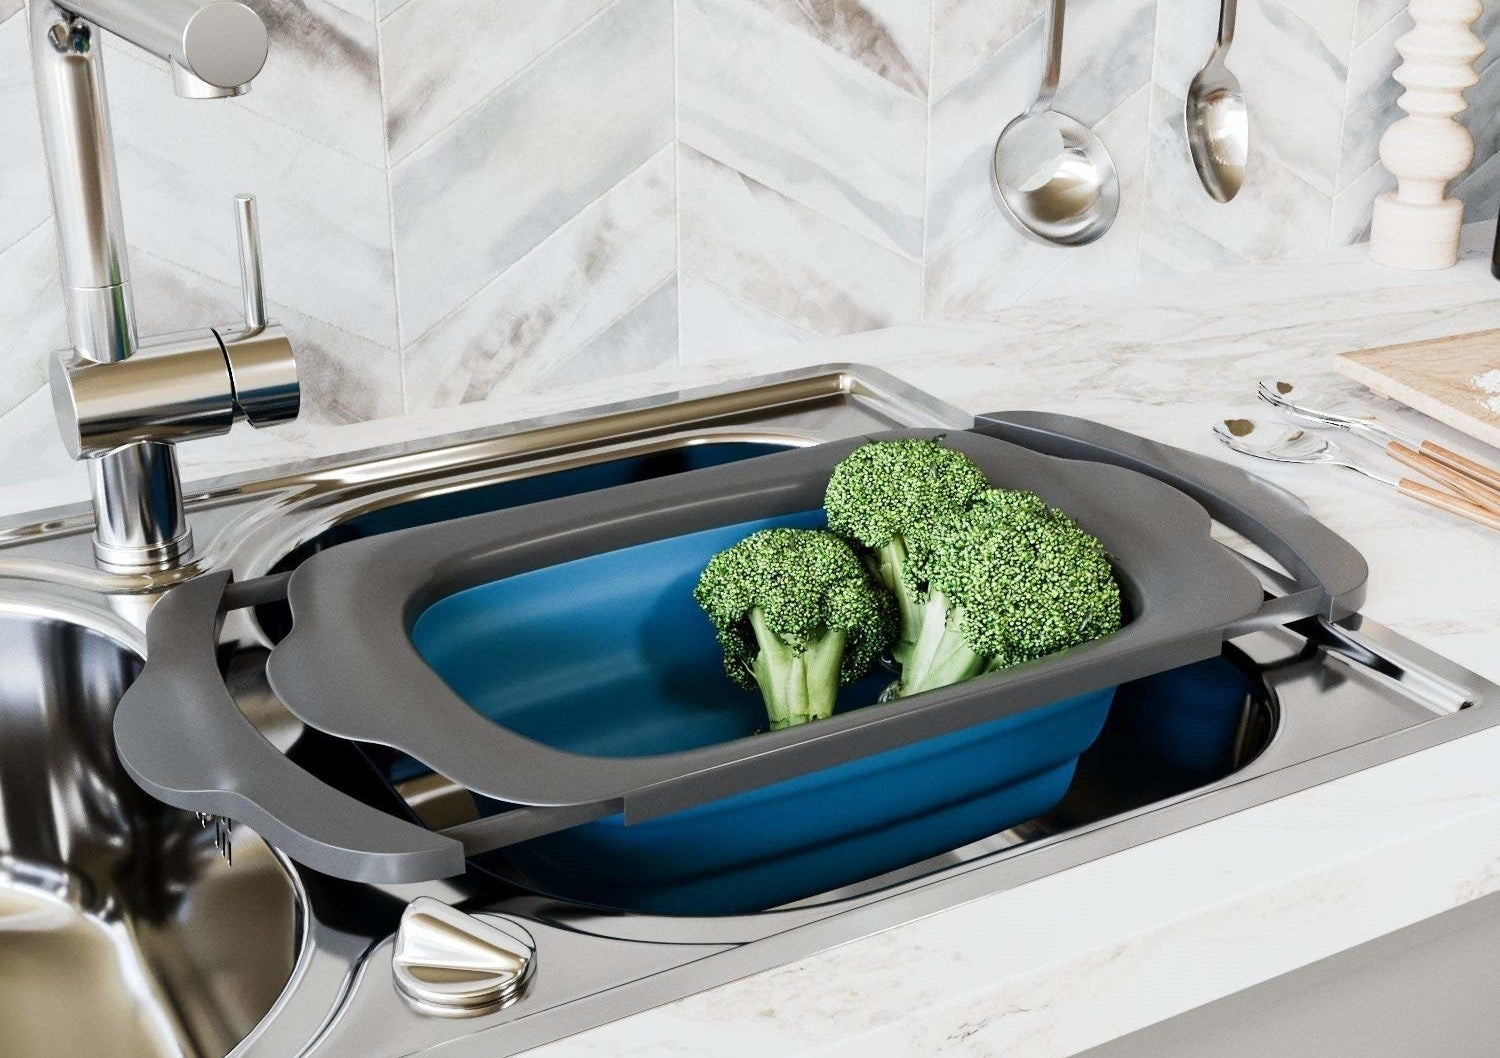 extendable colander inside sink with veggies